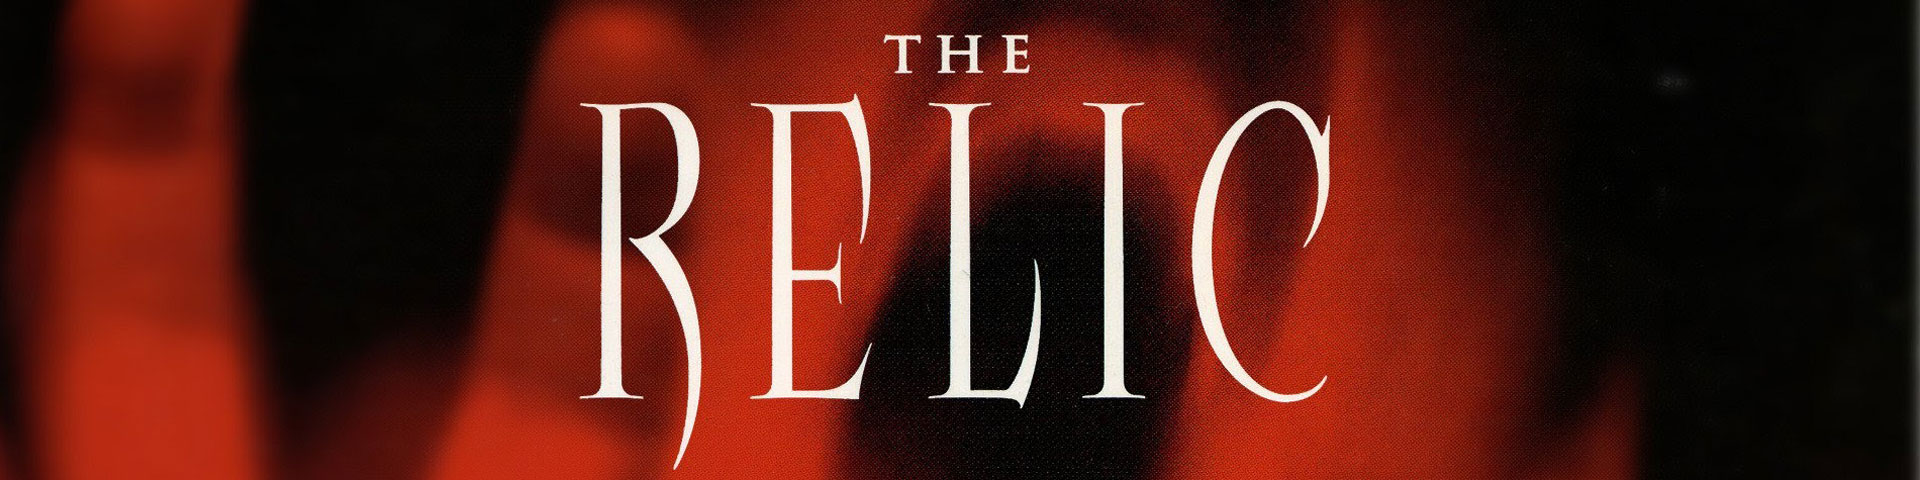 """The words """"The Relic"""" written over a distorted, screaming red face. The face appears over a black background."""